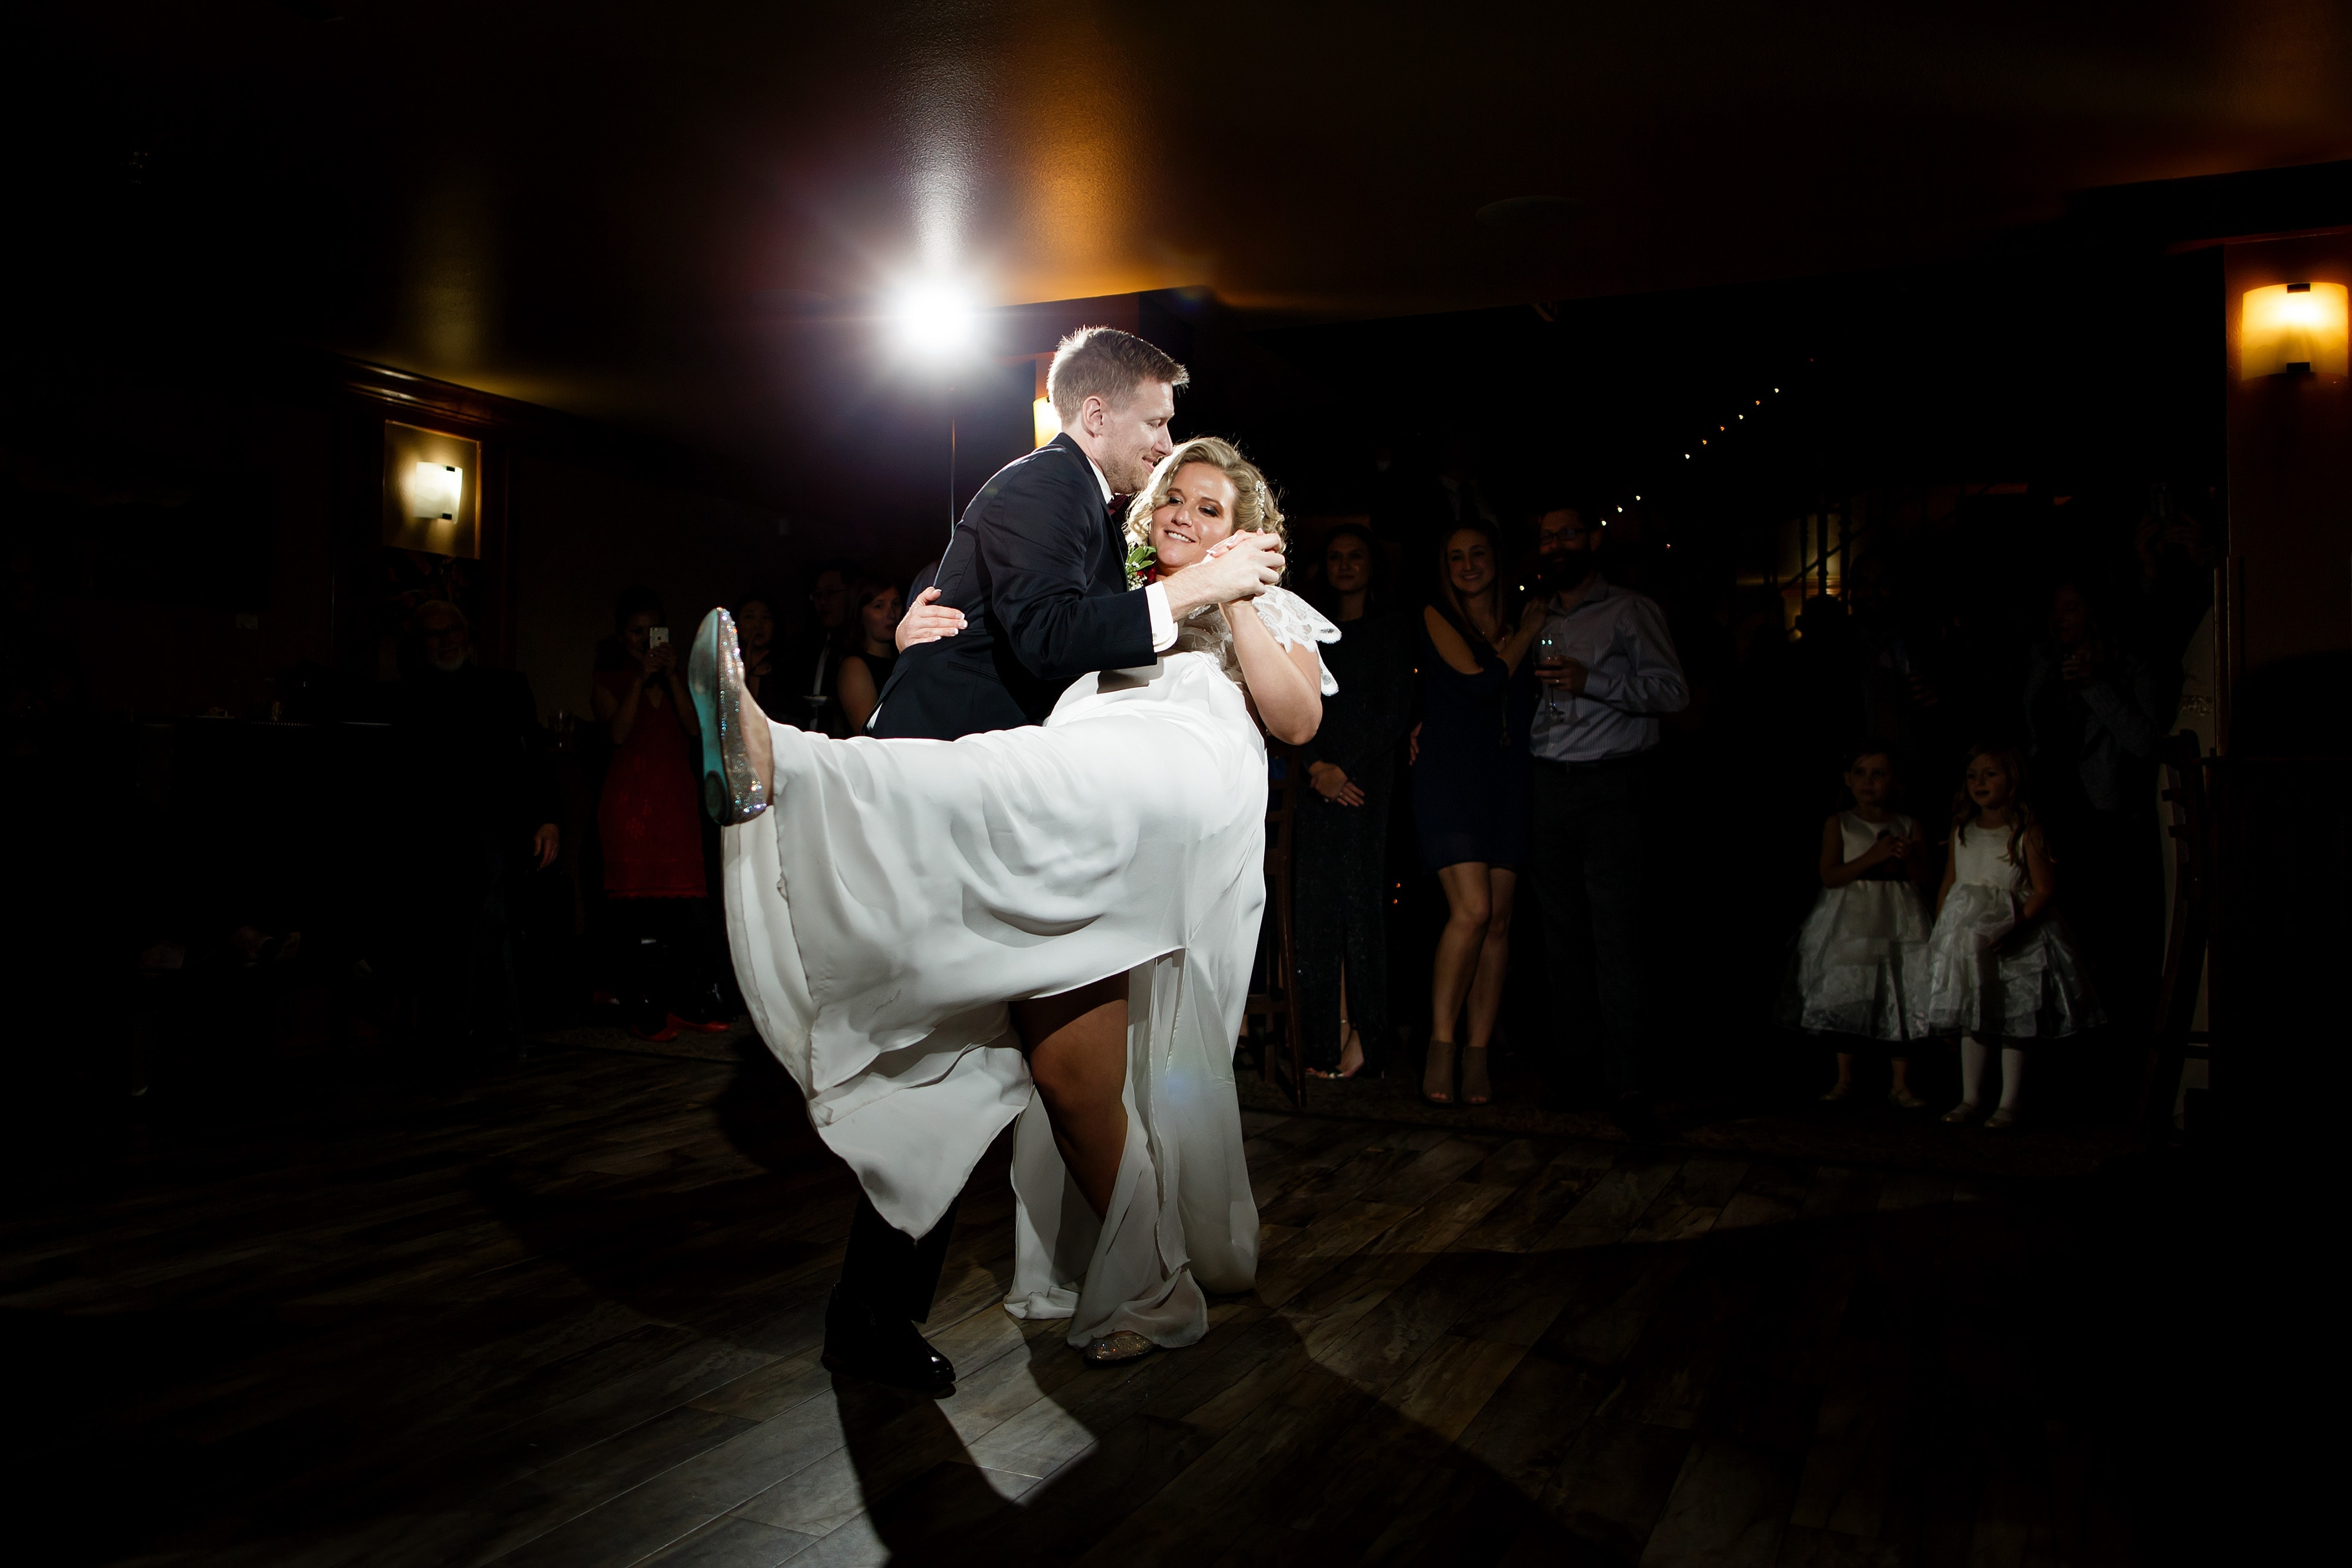 The couple share their first dance together during their wedding reception at The Lobby restaurant in Denver